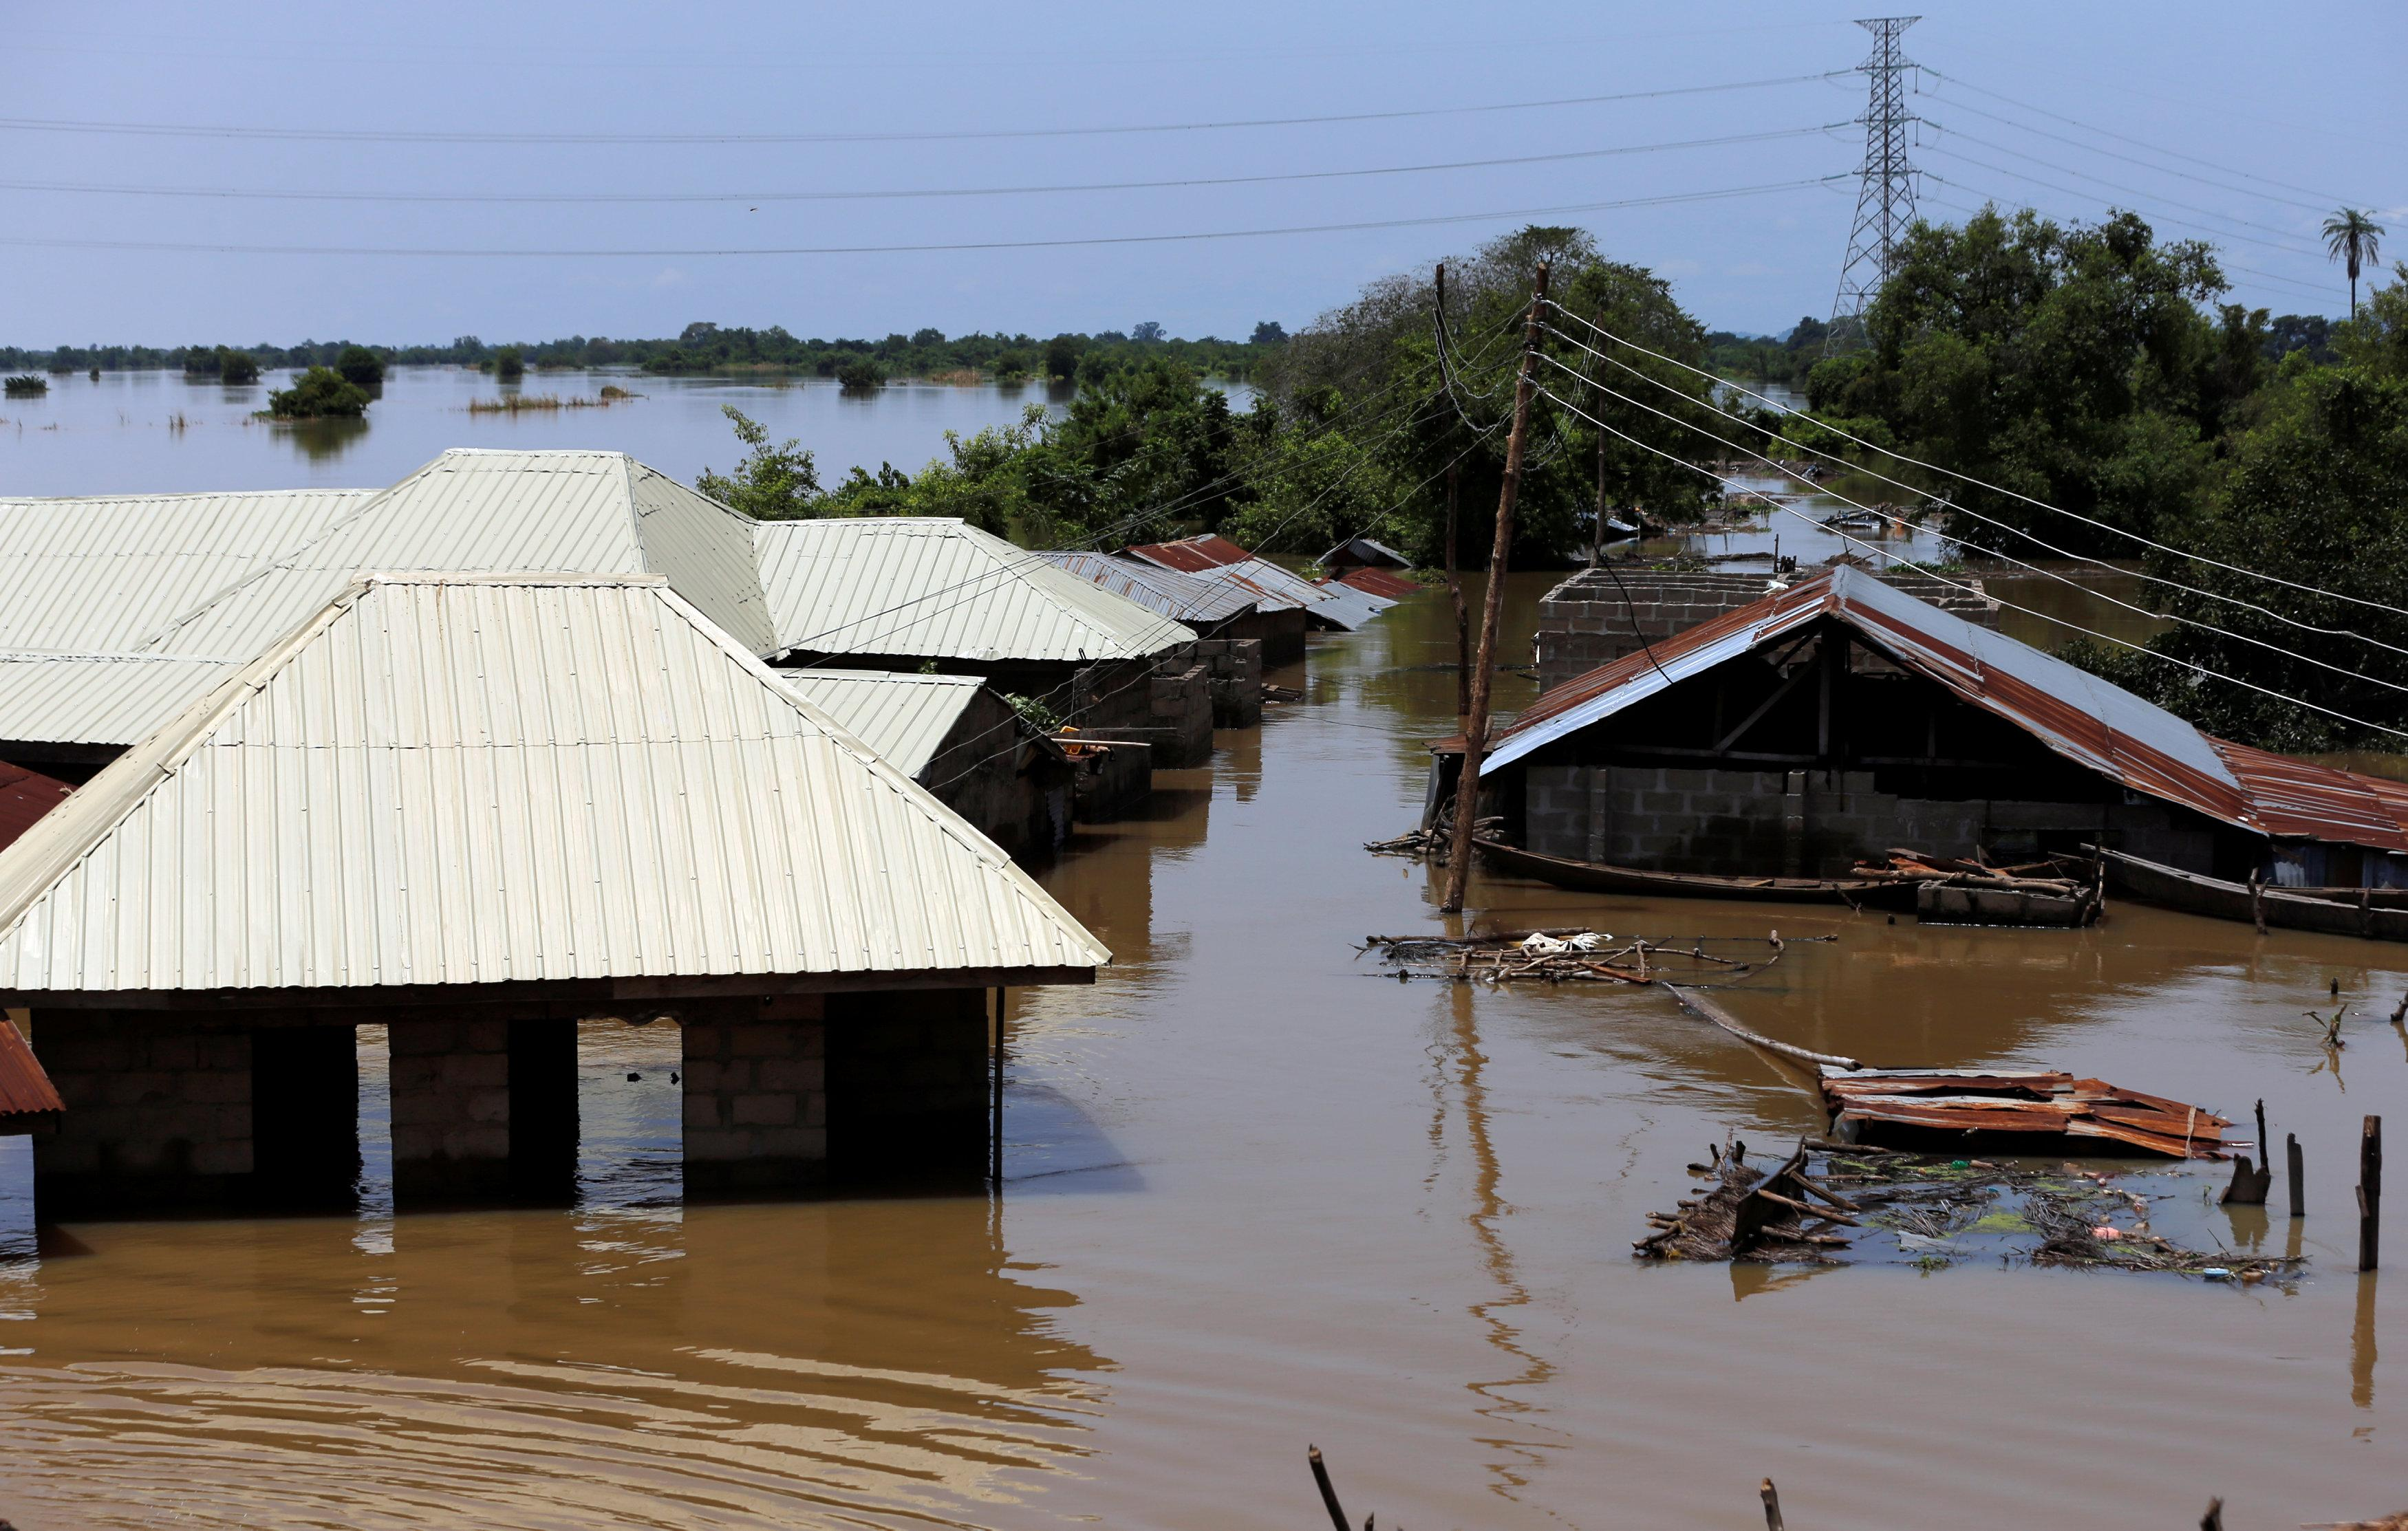 Houses partially submerged in flood waters are pictured  in Lokoja city, Kogi State, Nigeria September 17, 2018. Afolabi Sotunde